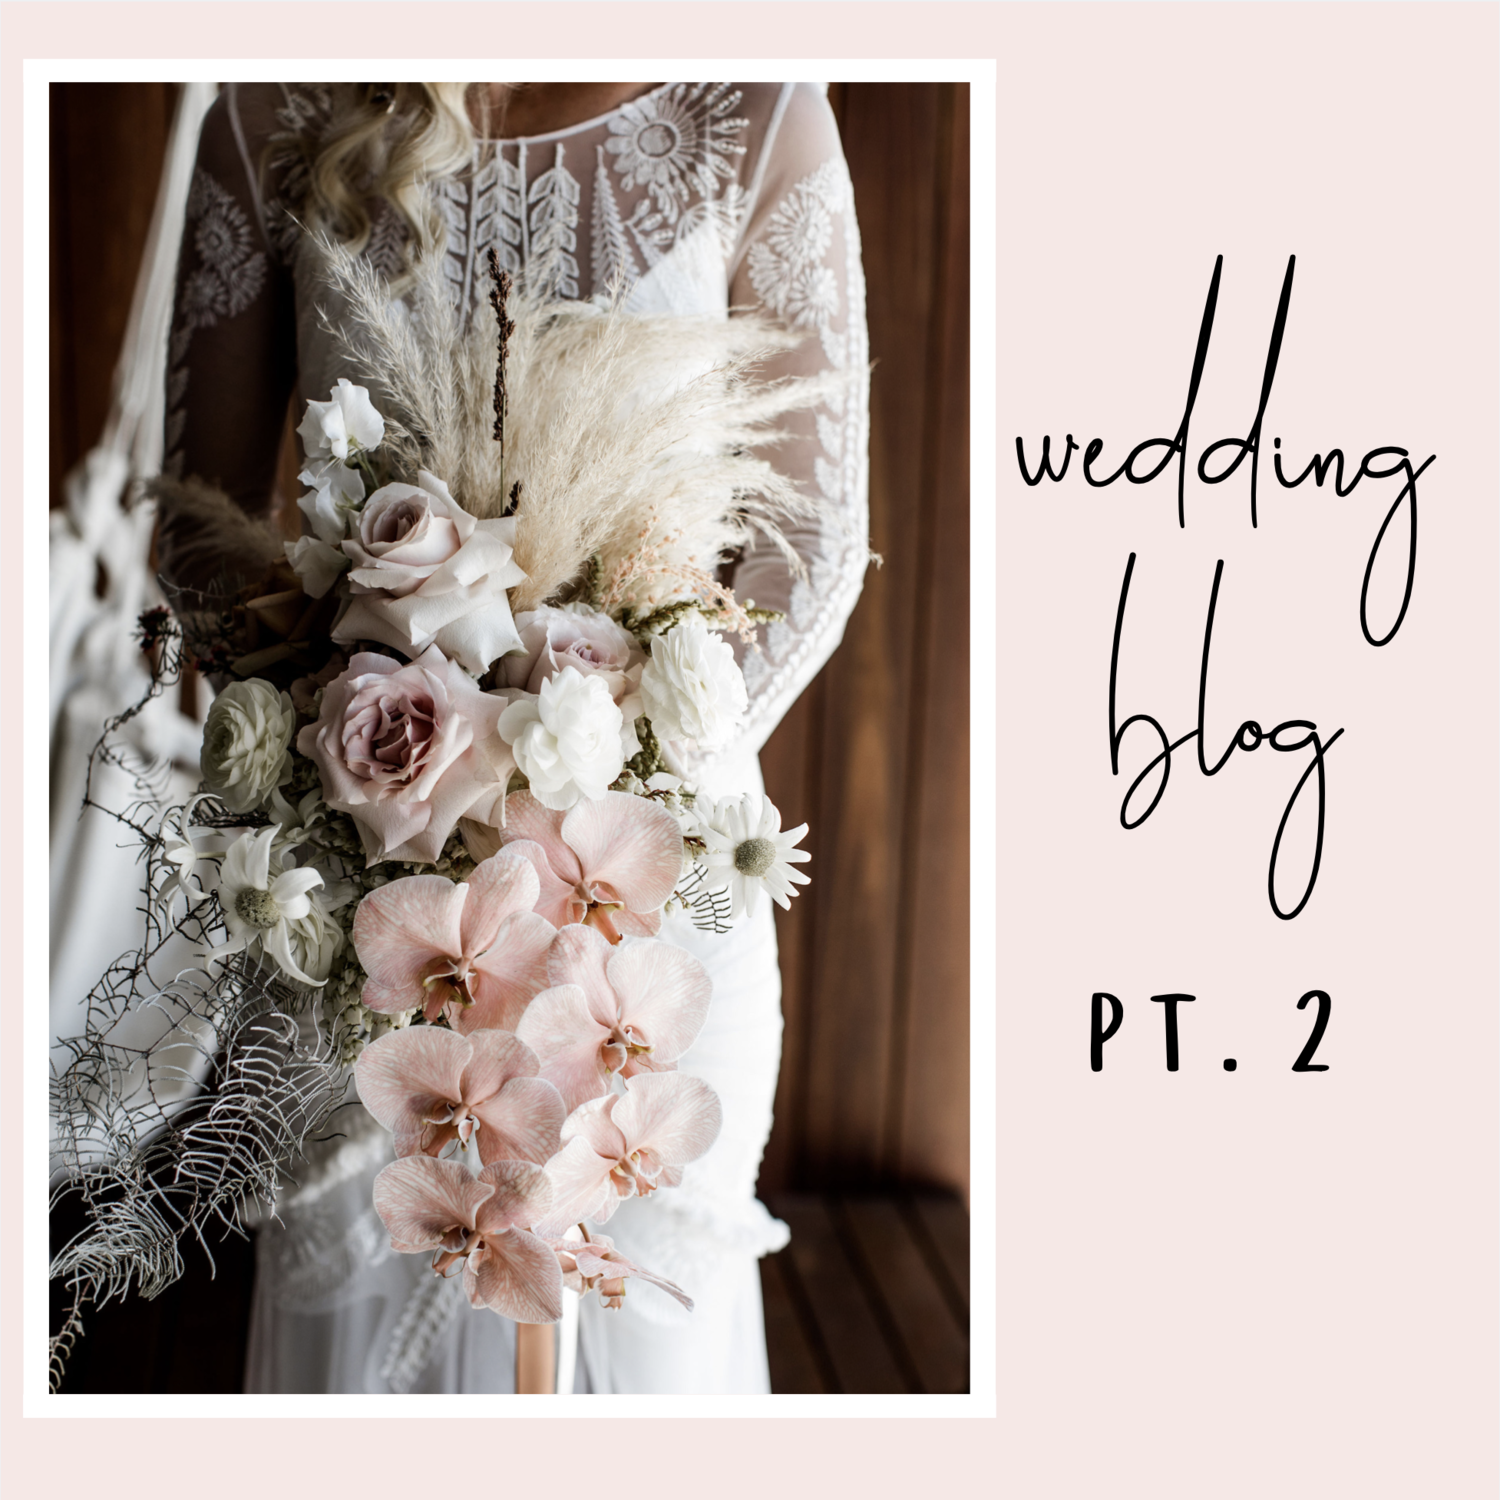 Wedding Party 2.Our Wedding Part 2 Bride And Bridal Party Details Elsa S